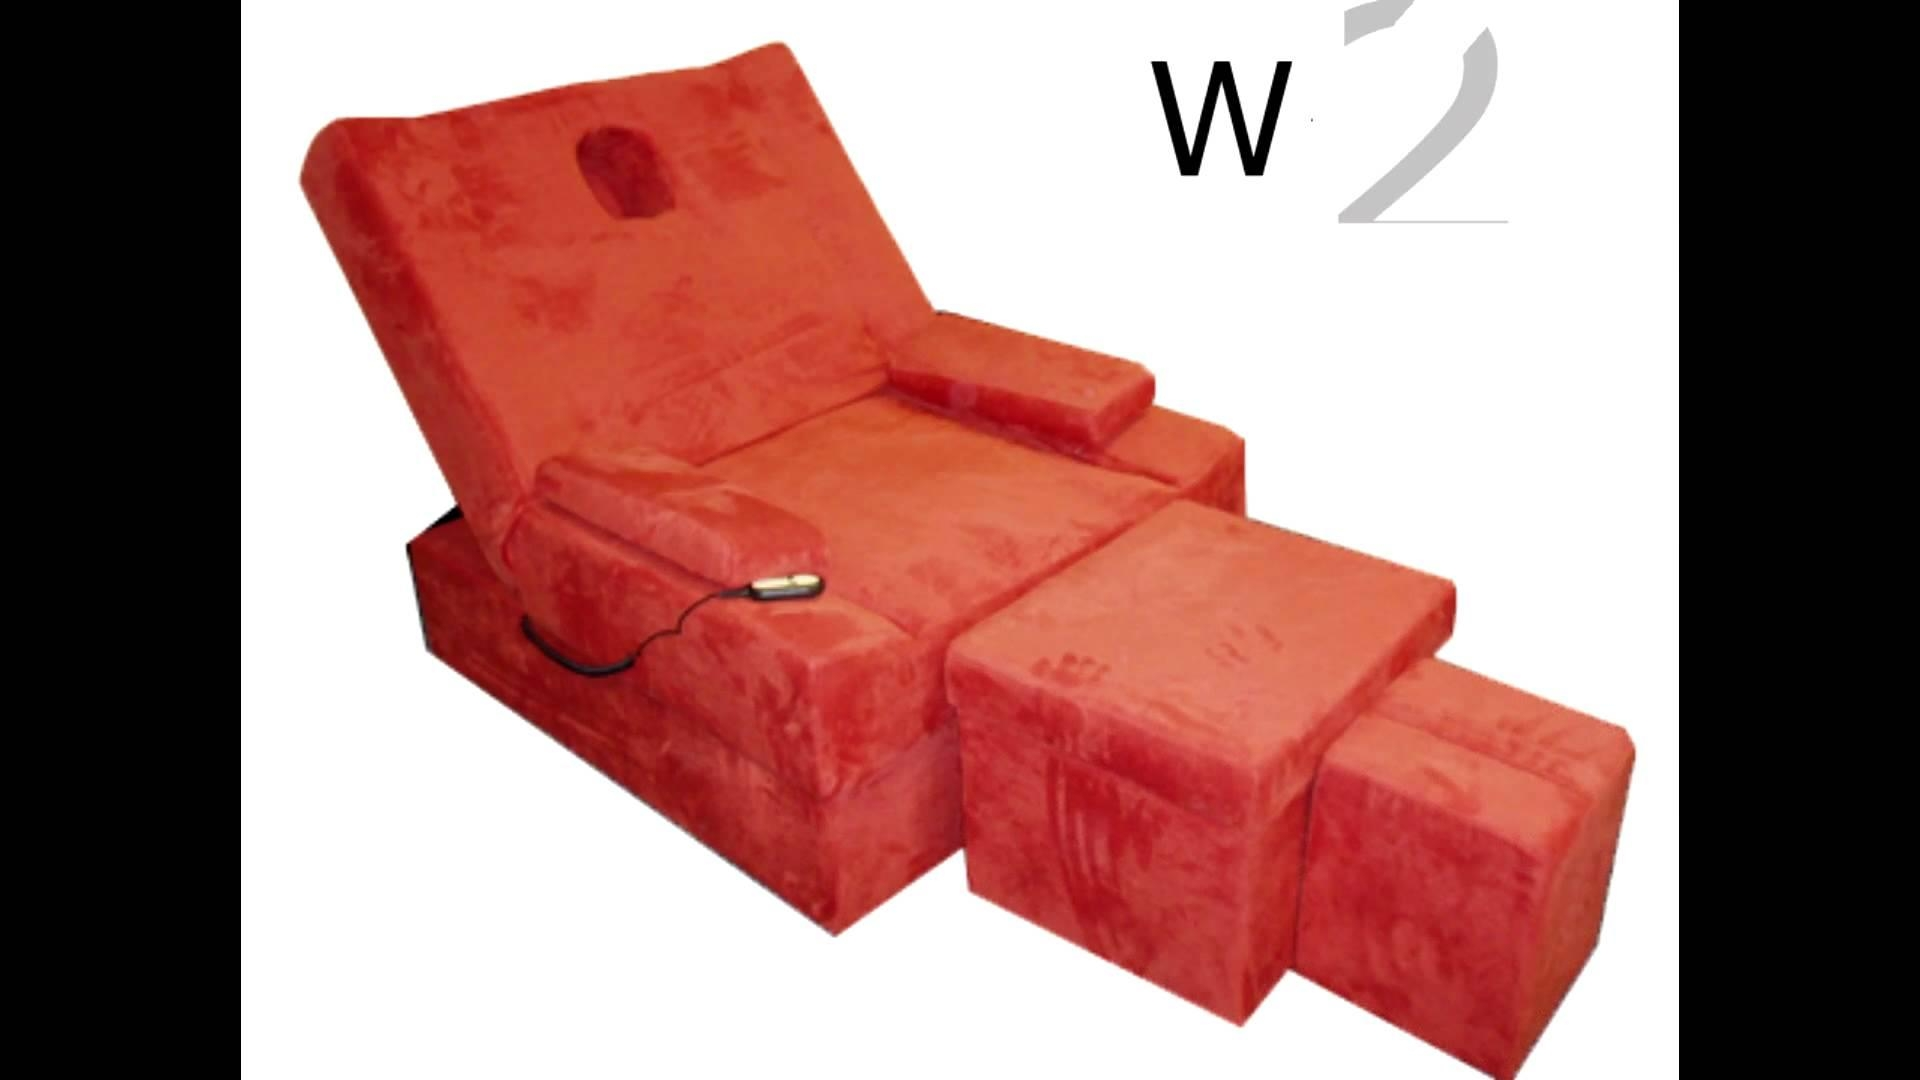 Electric Foot Massage Sofa Set 电动足浴沙发 Youtube Intended For Foot Massage Sofa Chairs (View 5 of 20)